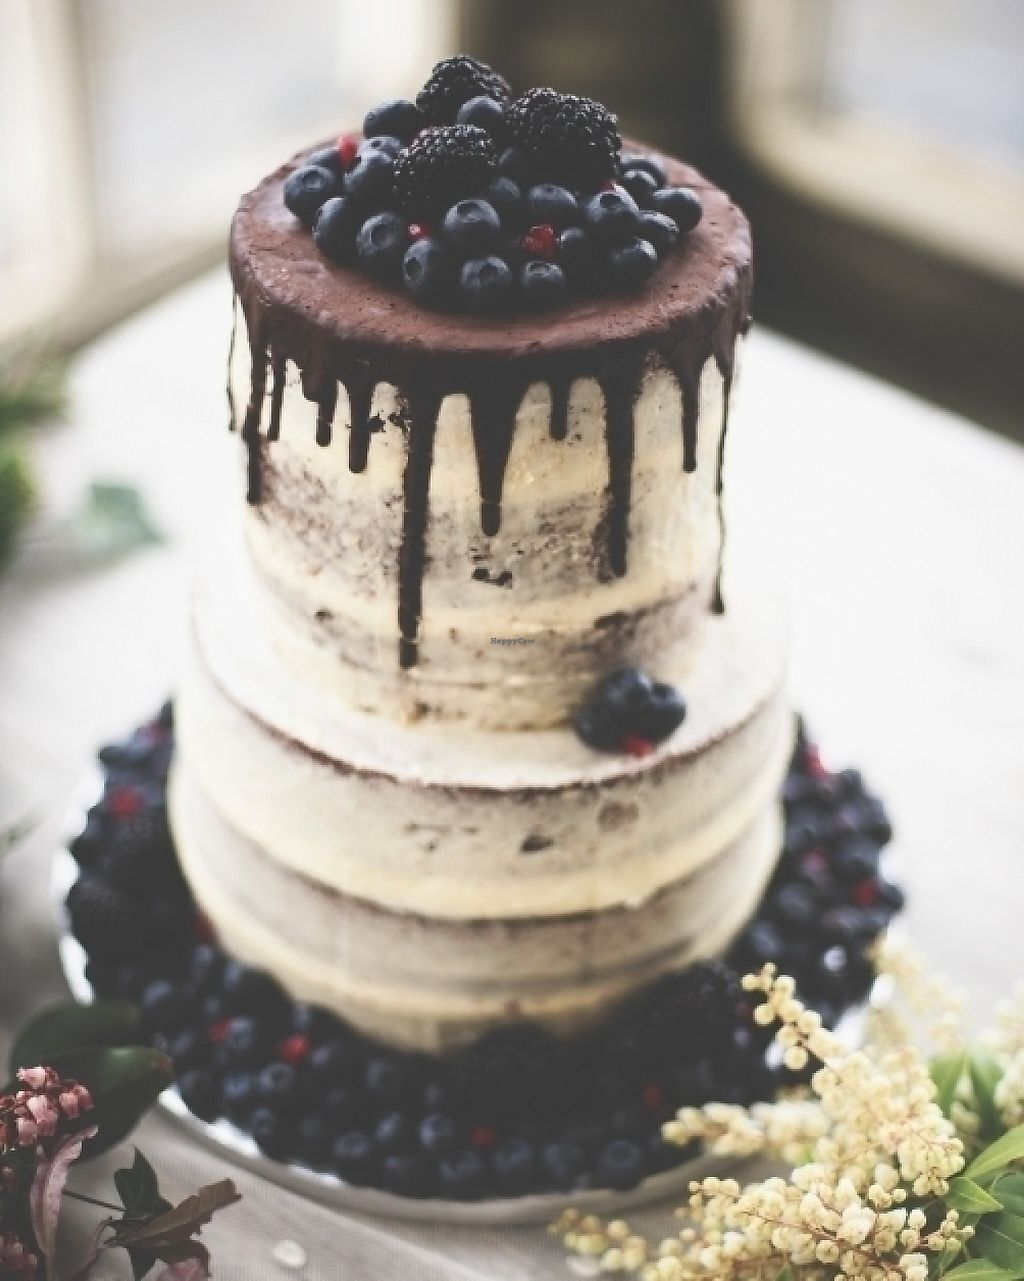 """Photo of Miam Vegan Bakery  by <a href=""""/members/profile/Whazy88"""">Whazy88</a> <br/>chocolate and vanilla naked wedding cake with berries <br/> June 3, 2017  - <a href='/contact/abuse/image/93307/265311'>Report</a>"""